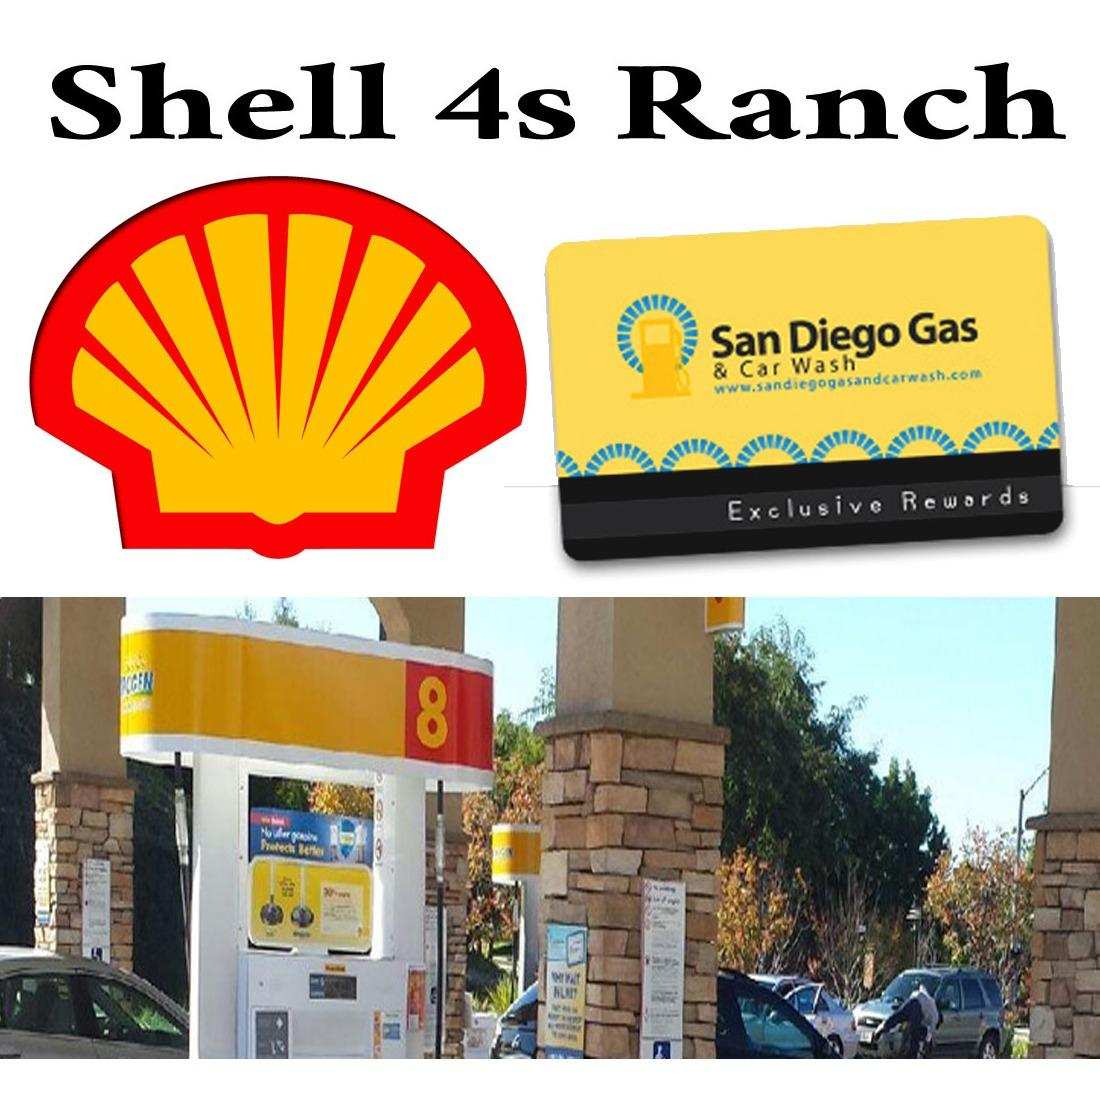 4S Ranch Shell Gas Station and Car Wash